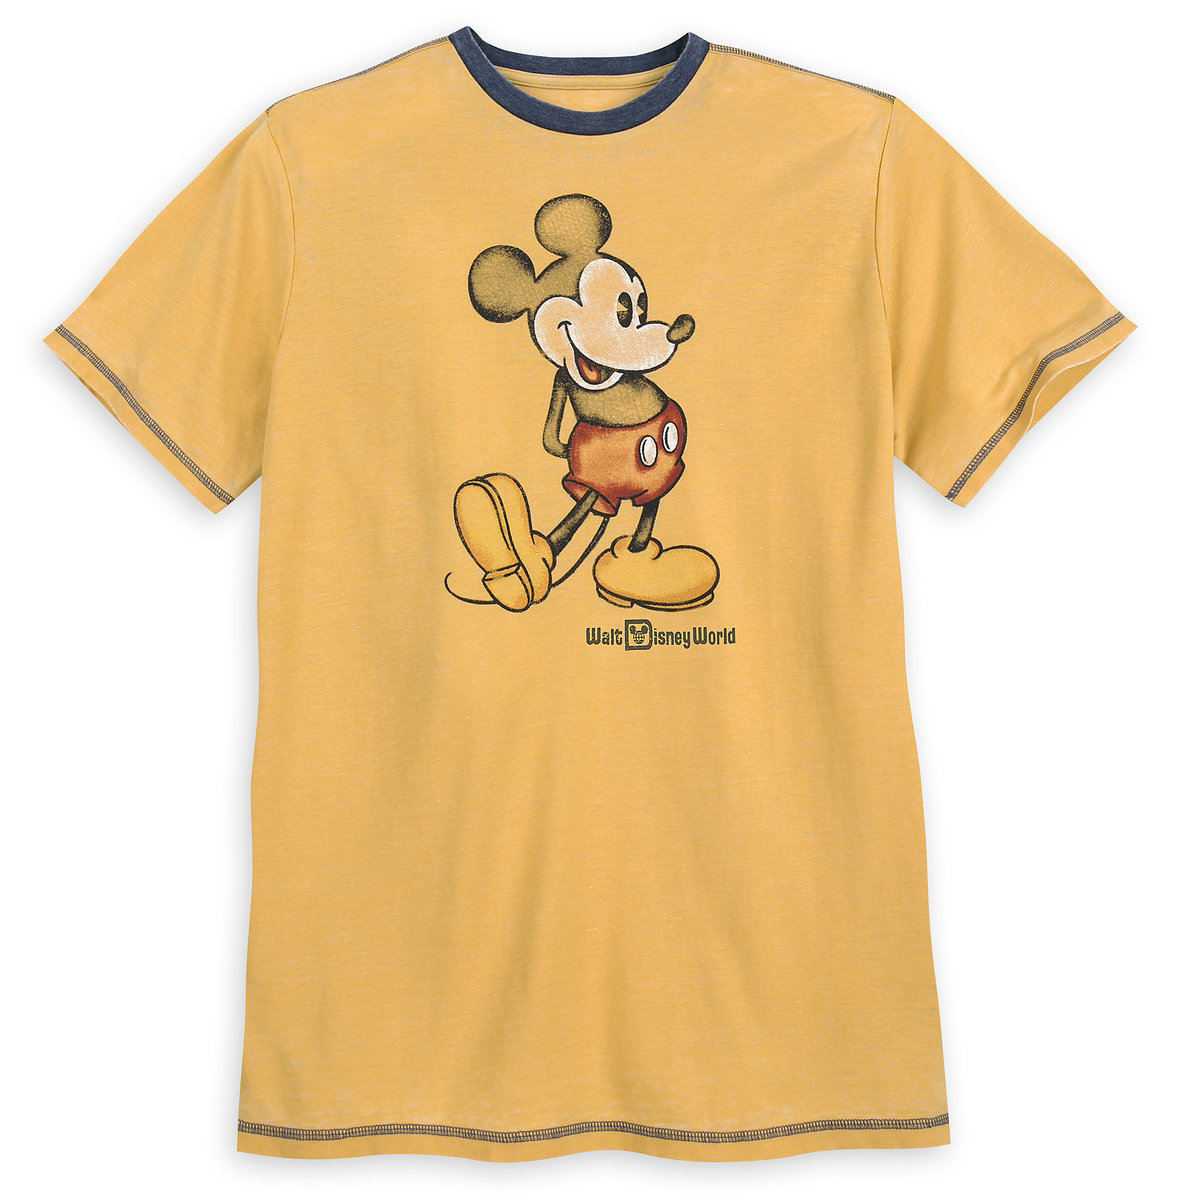 d531ac254 Product Image of Mickey Mouse Classic Ringer T-Shirt for Men - Walt Disney  World